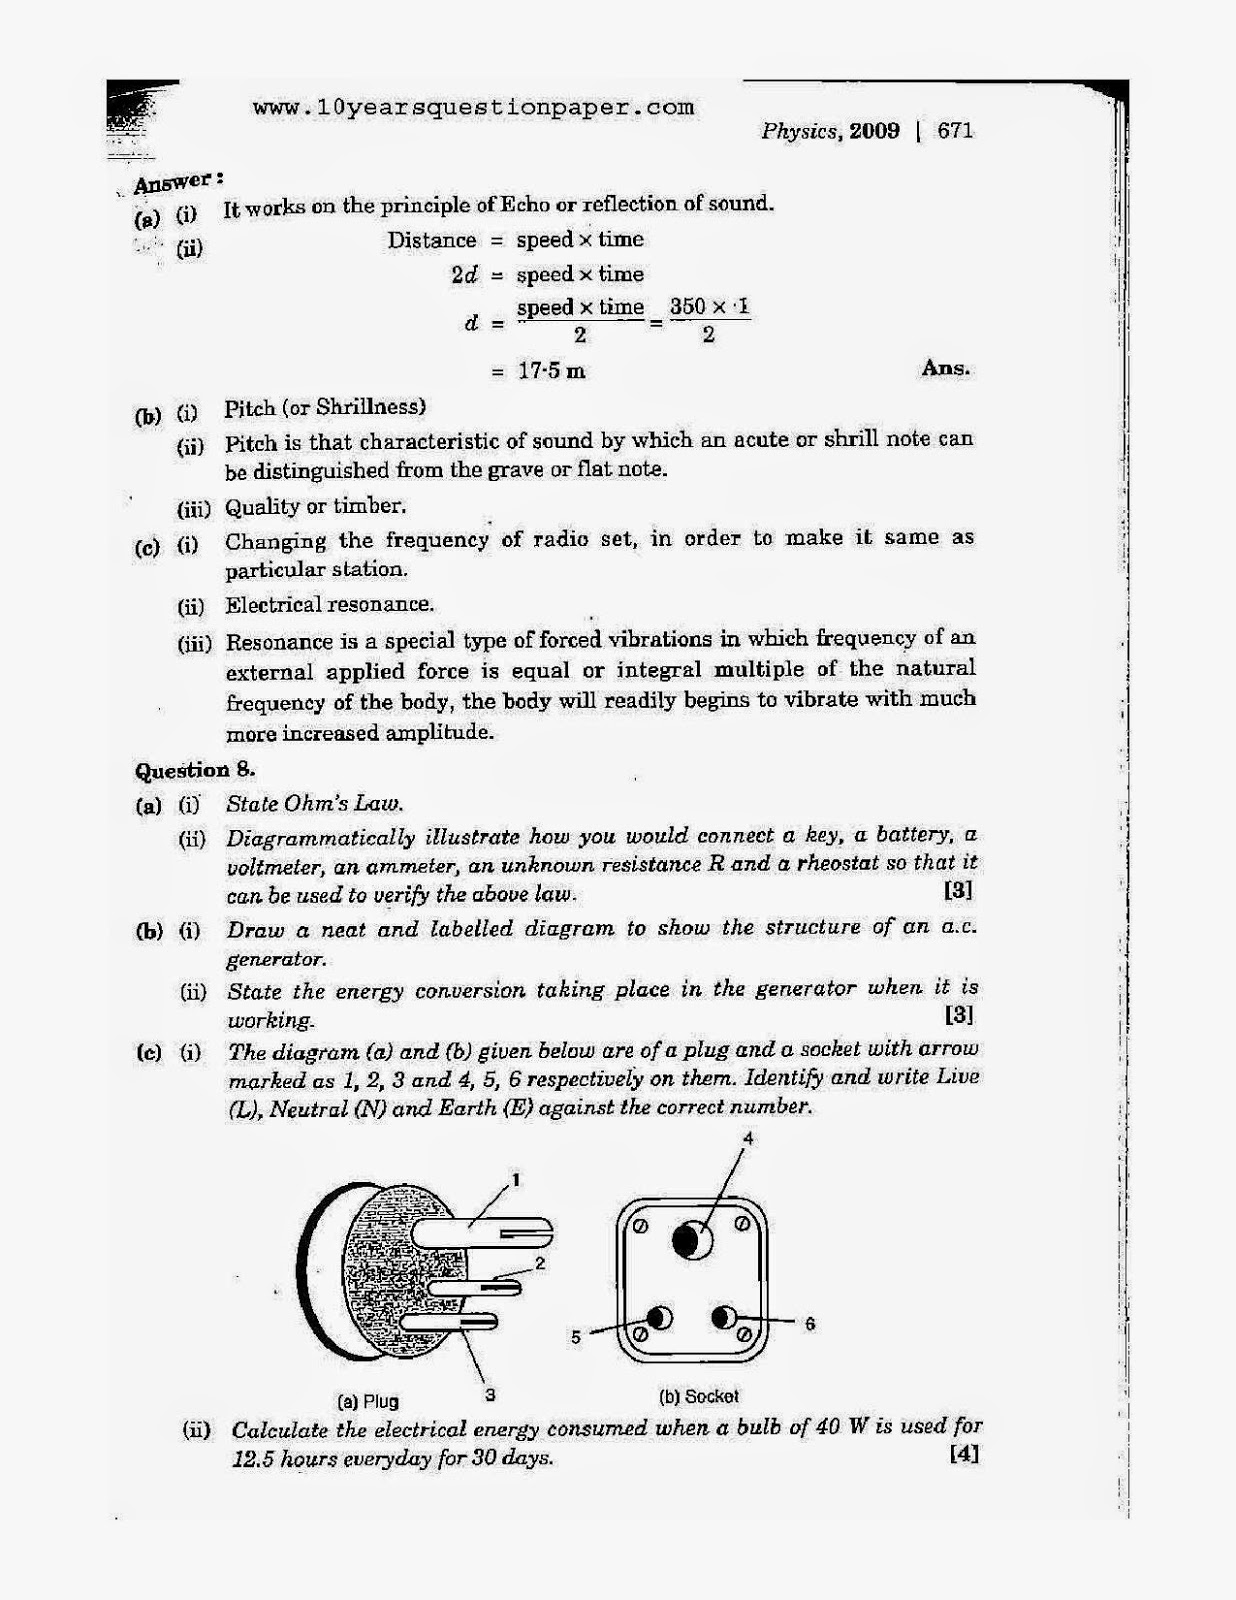 icse 2009 class 10th science physics paper 1 question paper